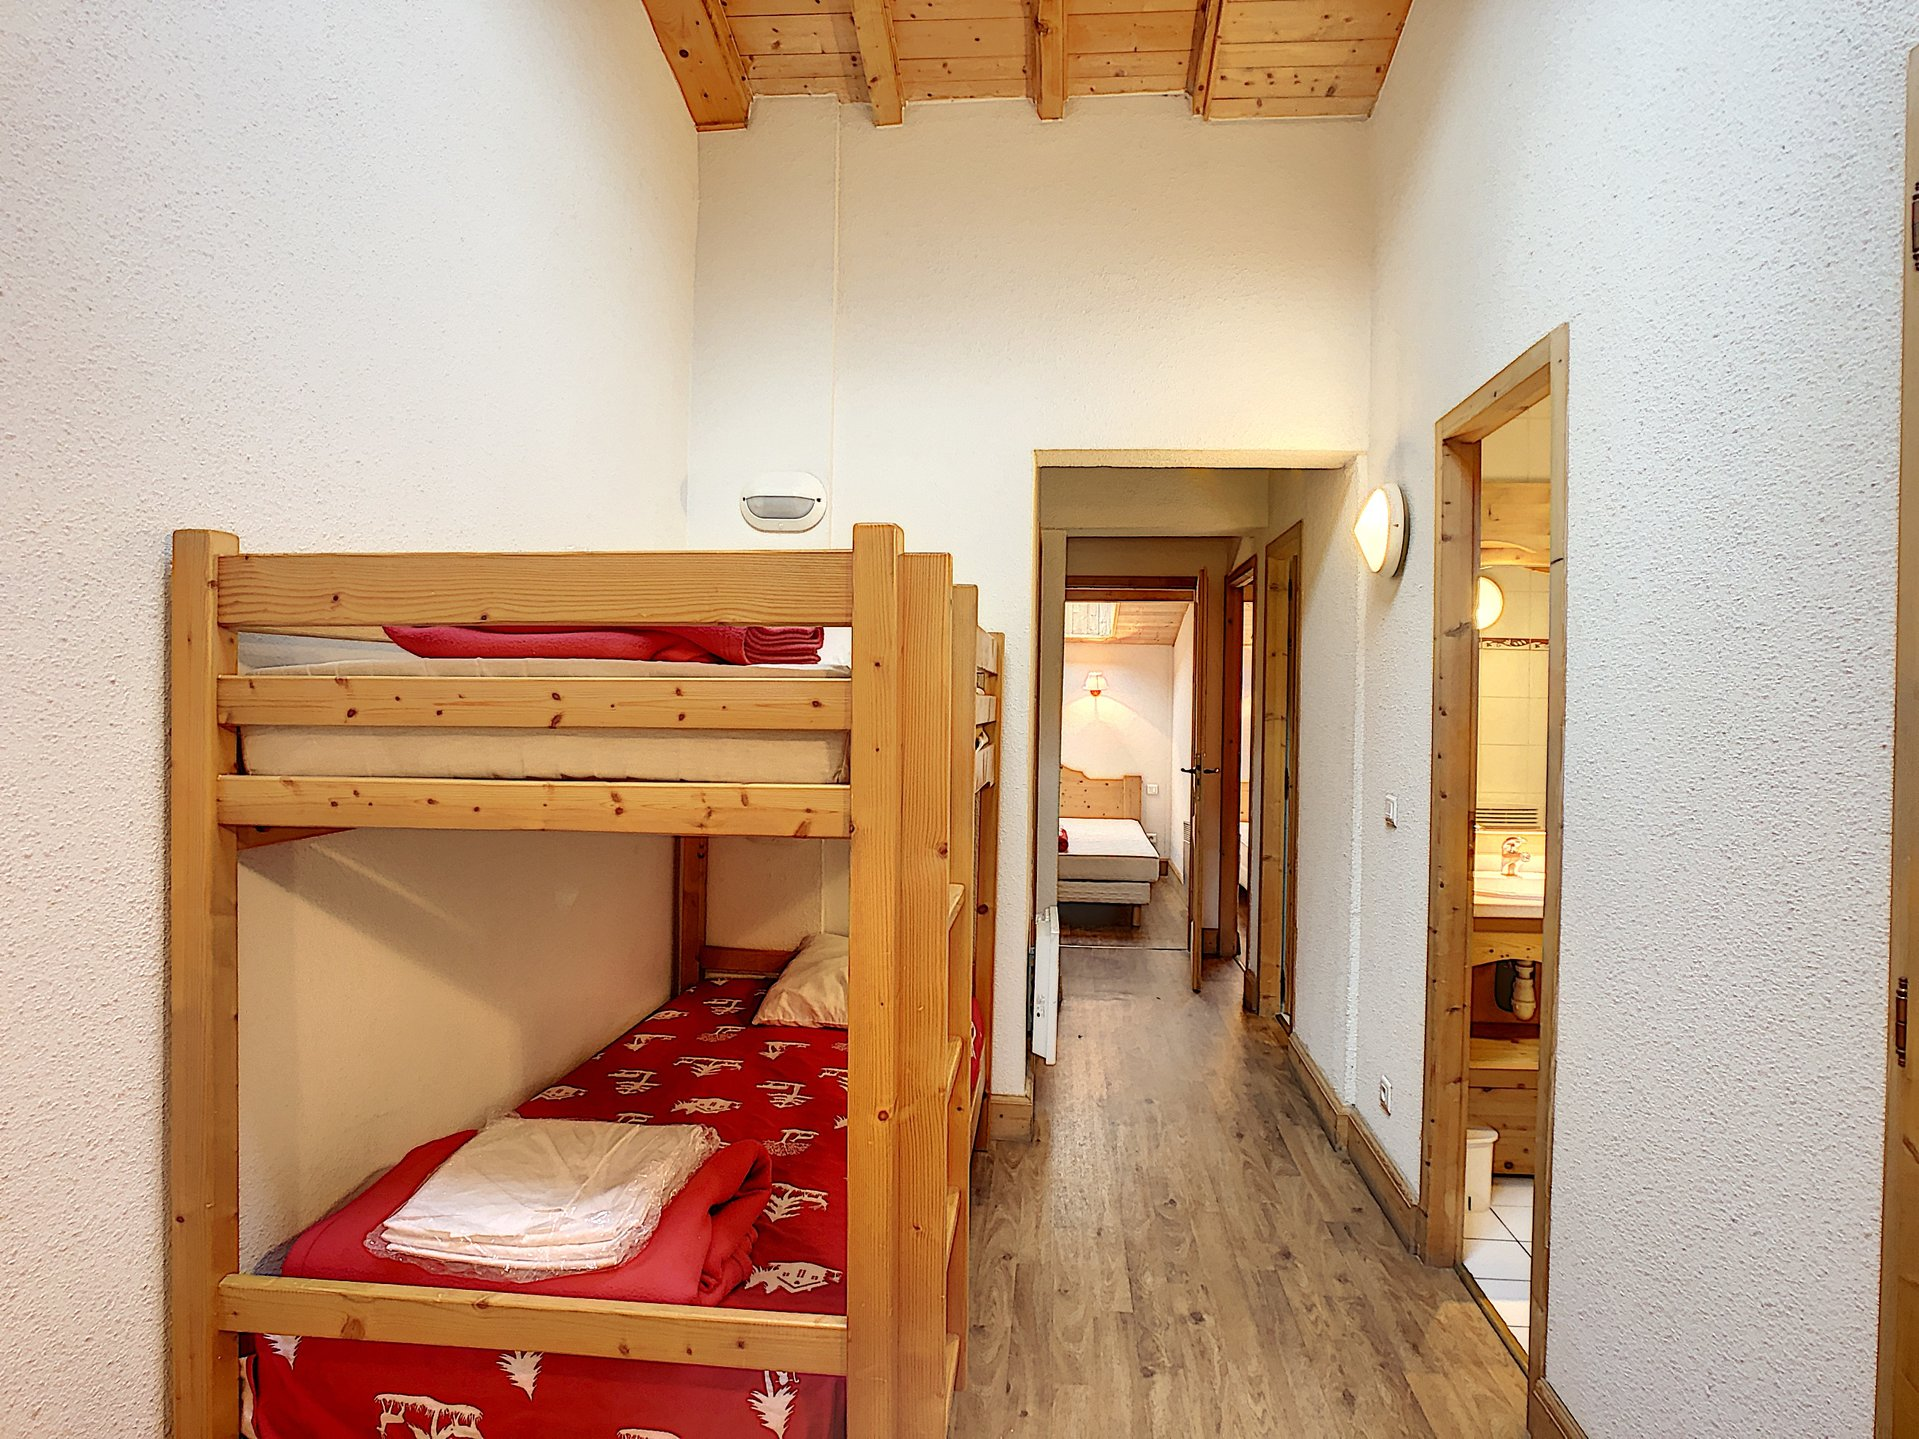 4 bedrooms apartment, Les Houches Saint-Antoine